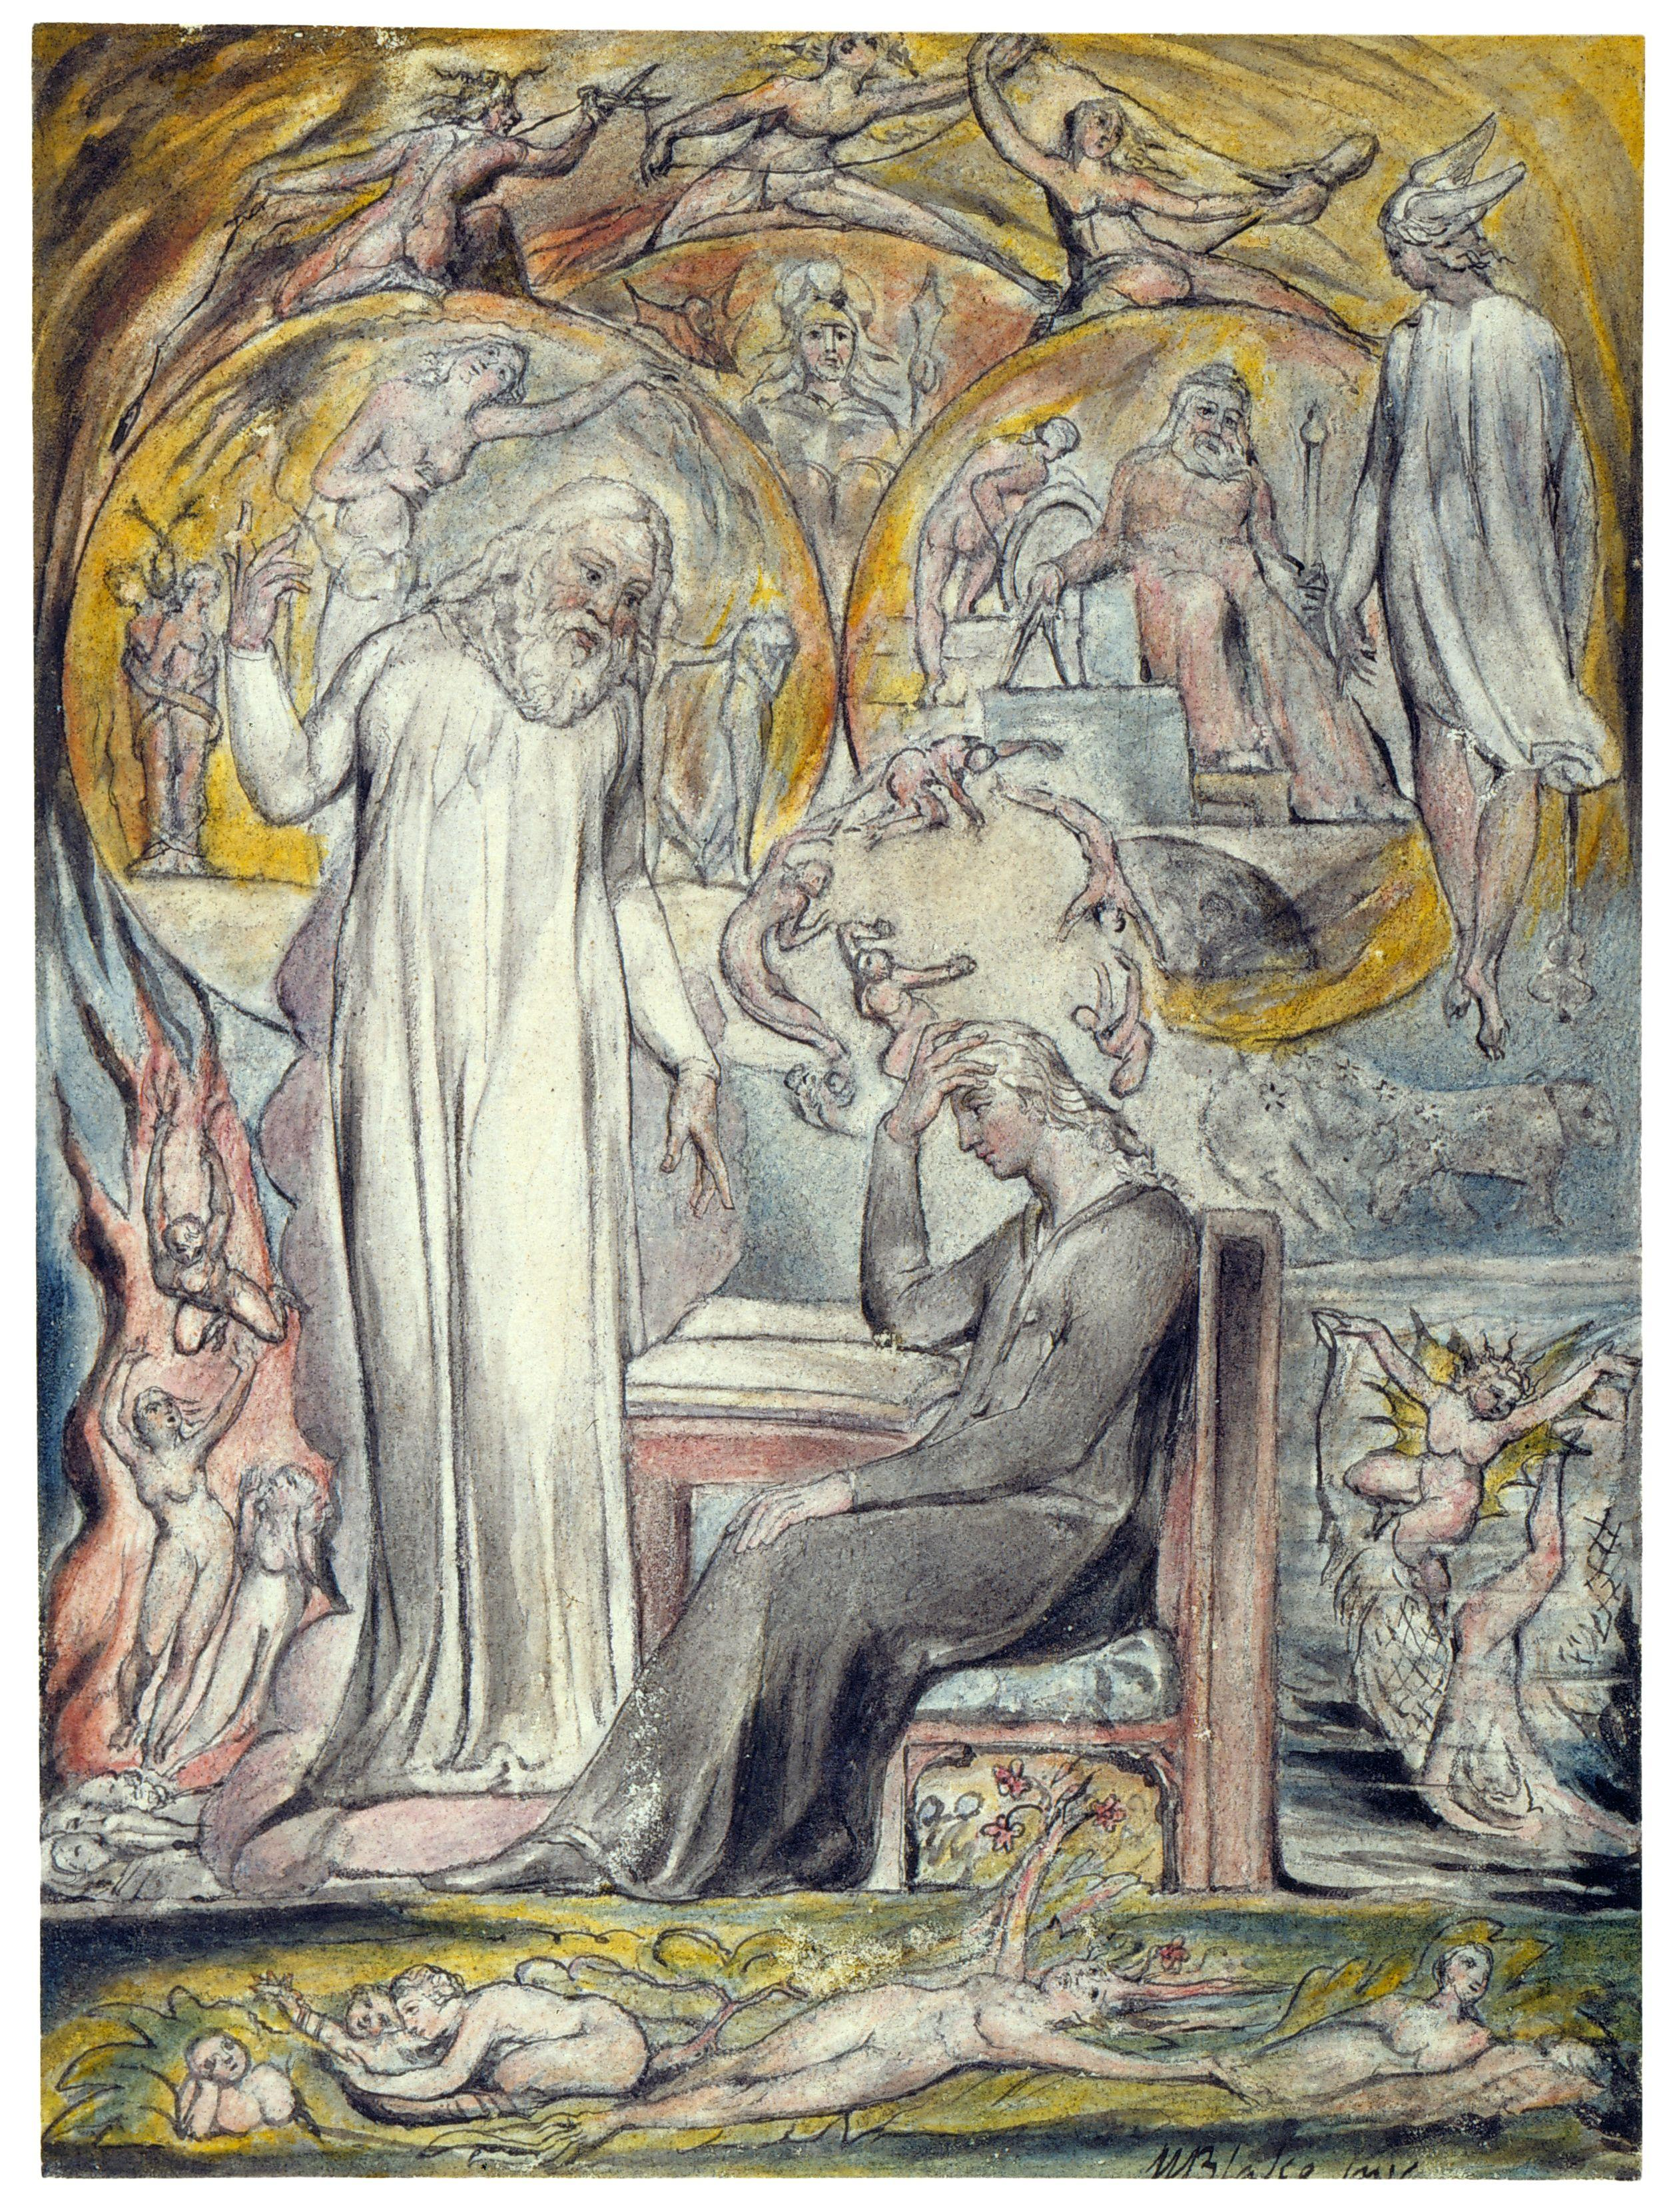 Penseroso__LAllegro_William_Blake9.jpg